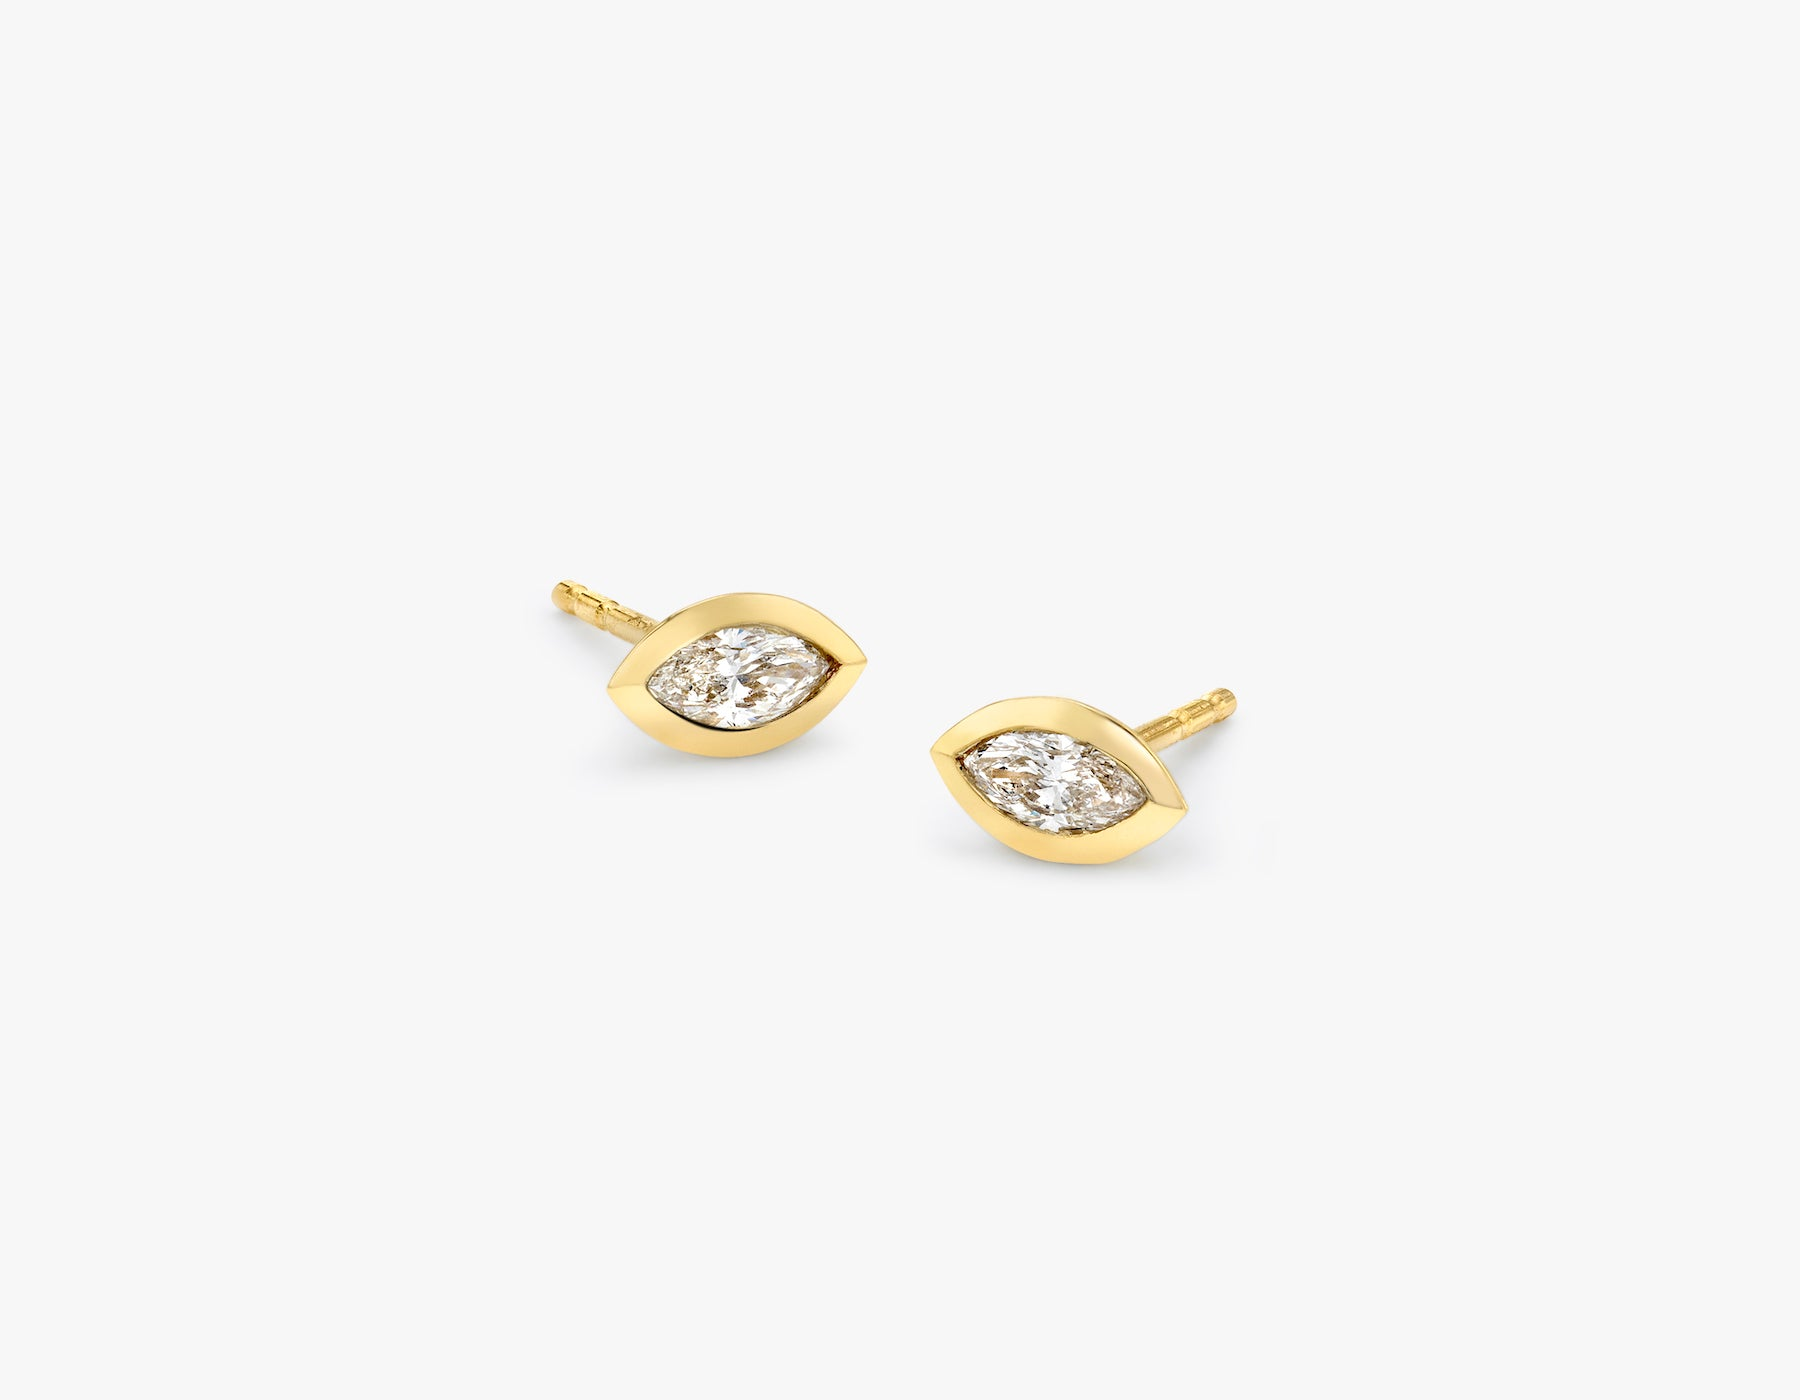 Vrai simple minimalist Marquise Diamond Bezel Earrings, 14K Yellow Gold